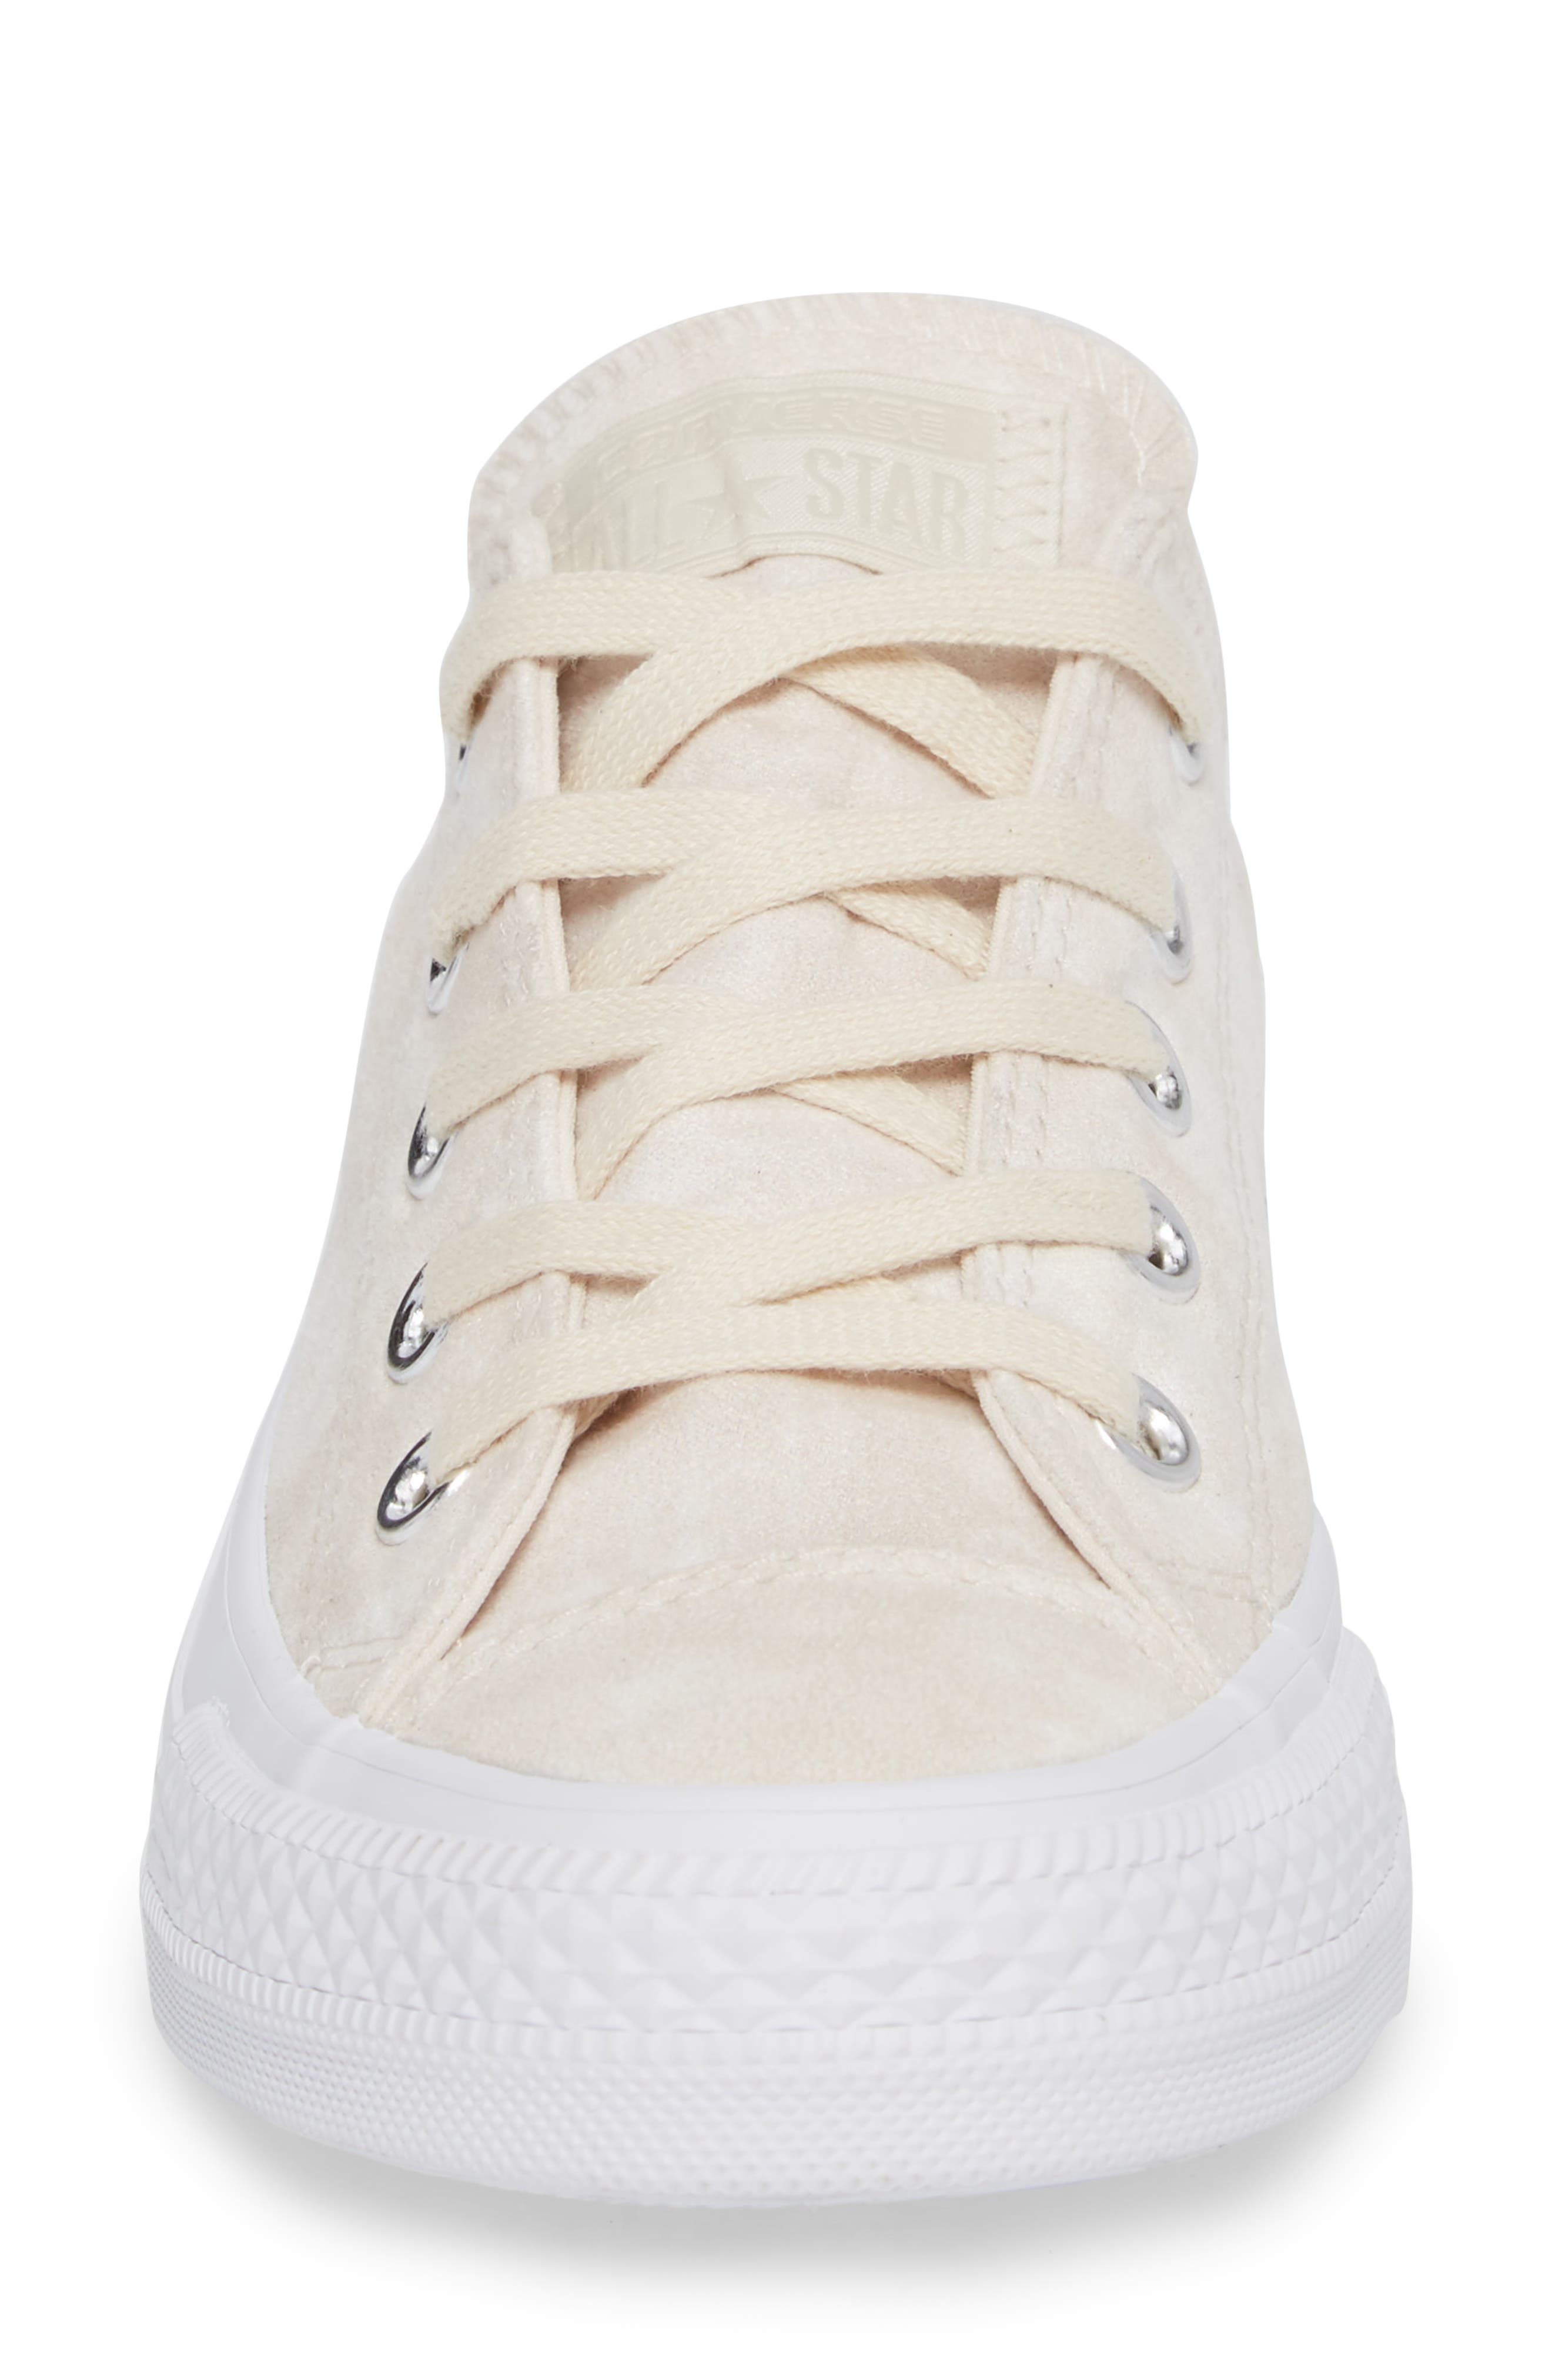 Chuck Taylor<sup>®</sup> All Star<sup>®</sup> Peached Low Top Sneaker,                             Alternate thumbnail 4, color,                             Driftwood